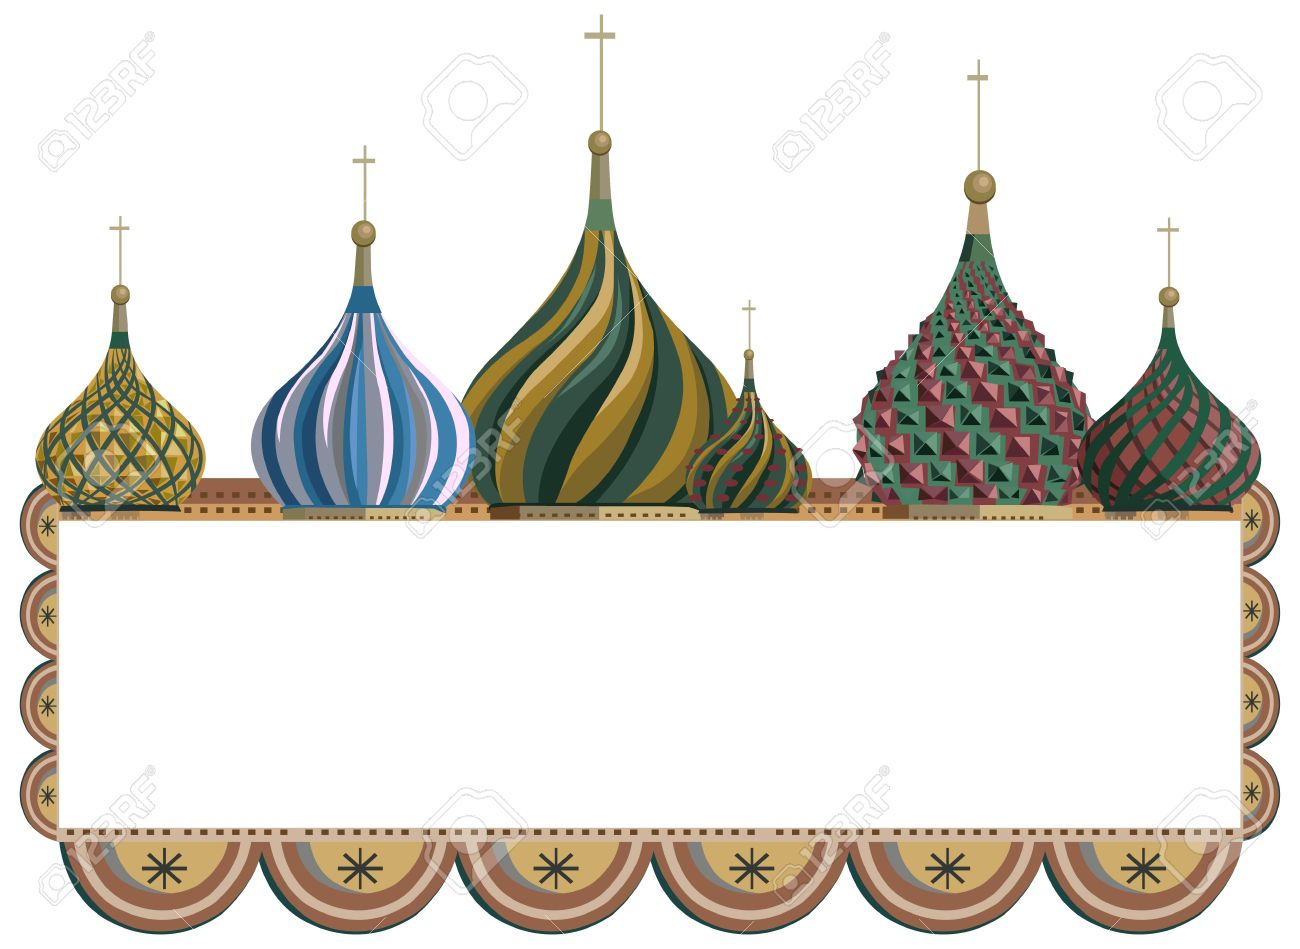 Ornamental Frame Illustration With Kremlin Domes, Isolated On.